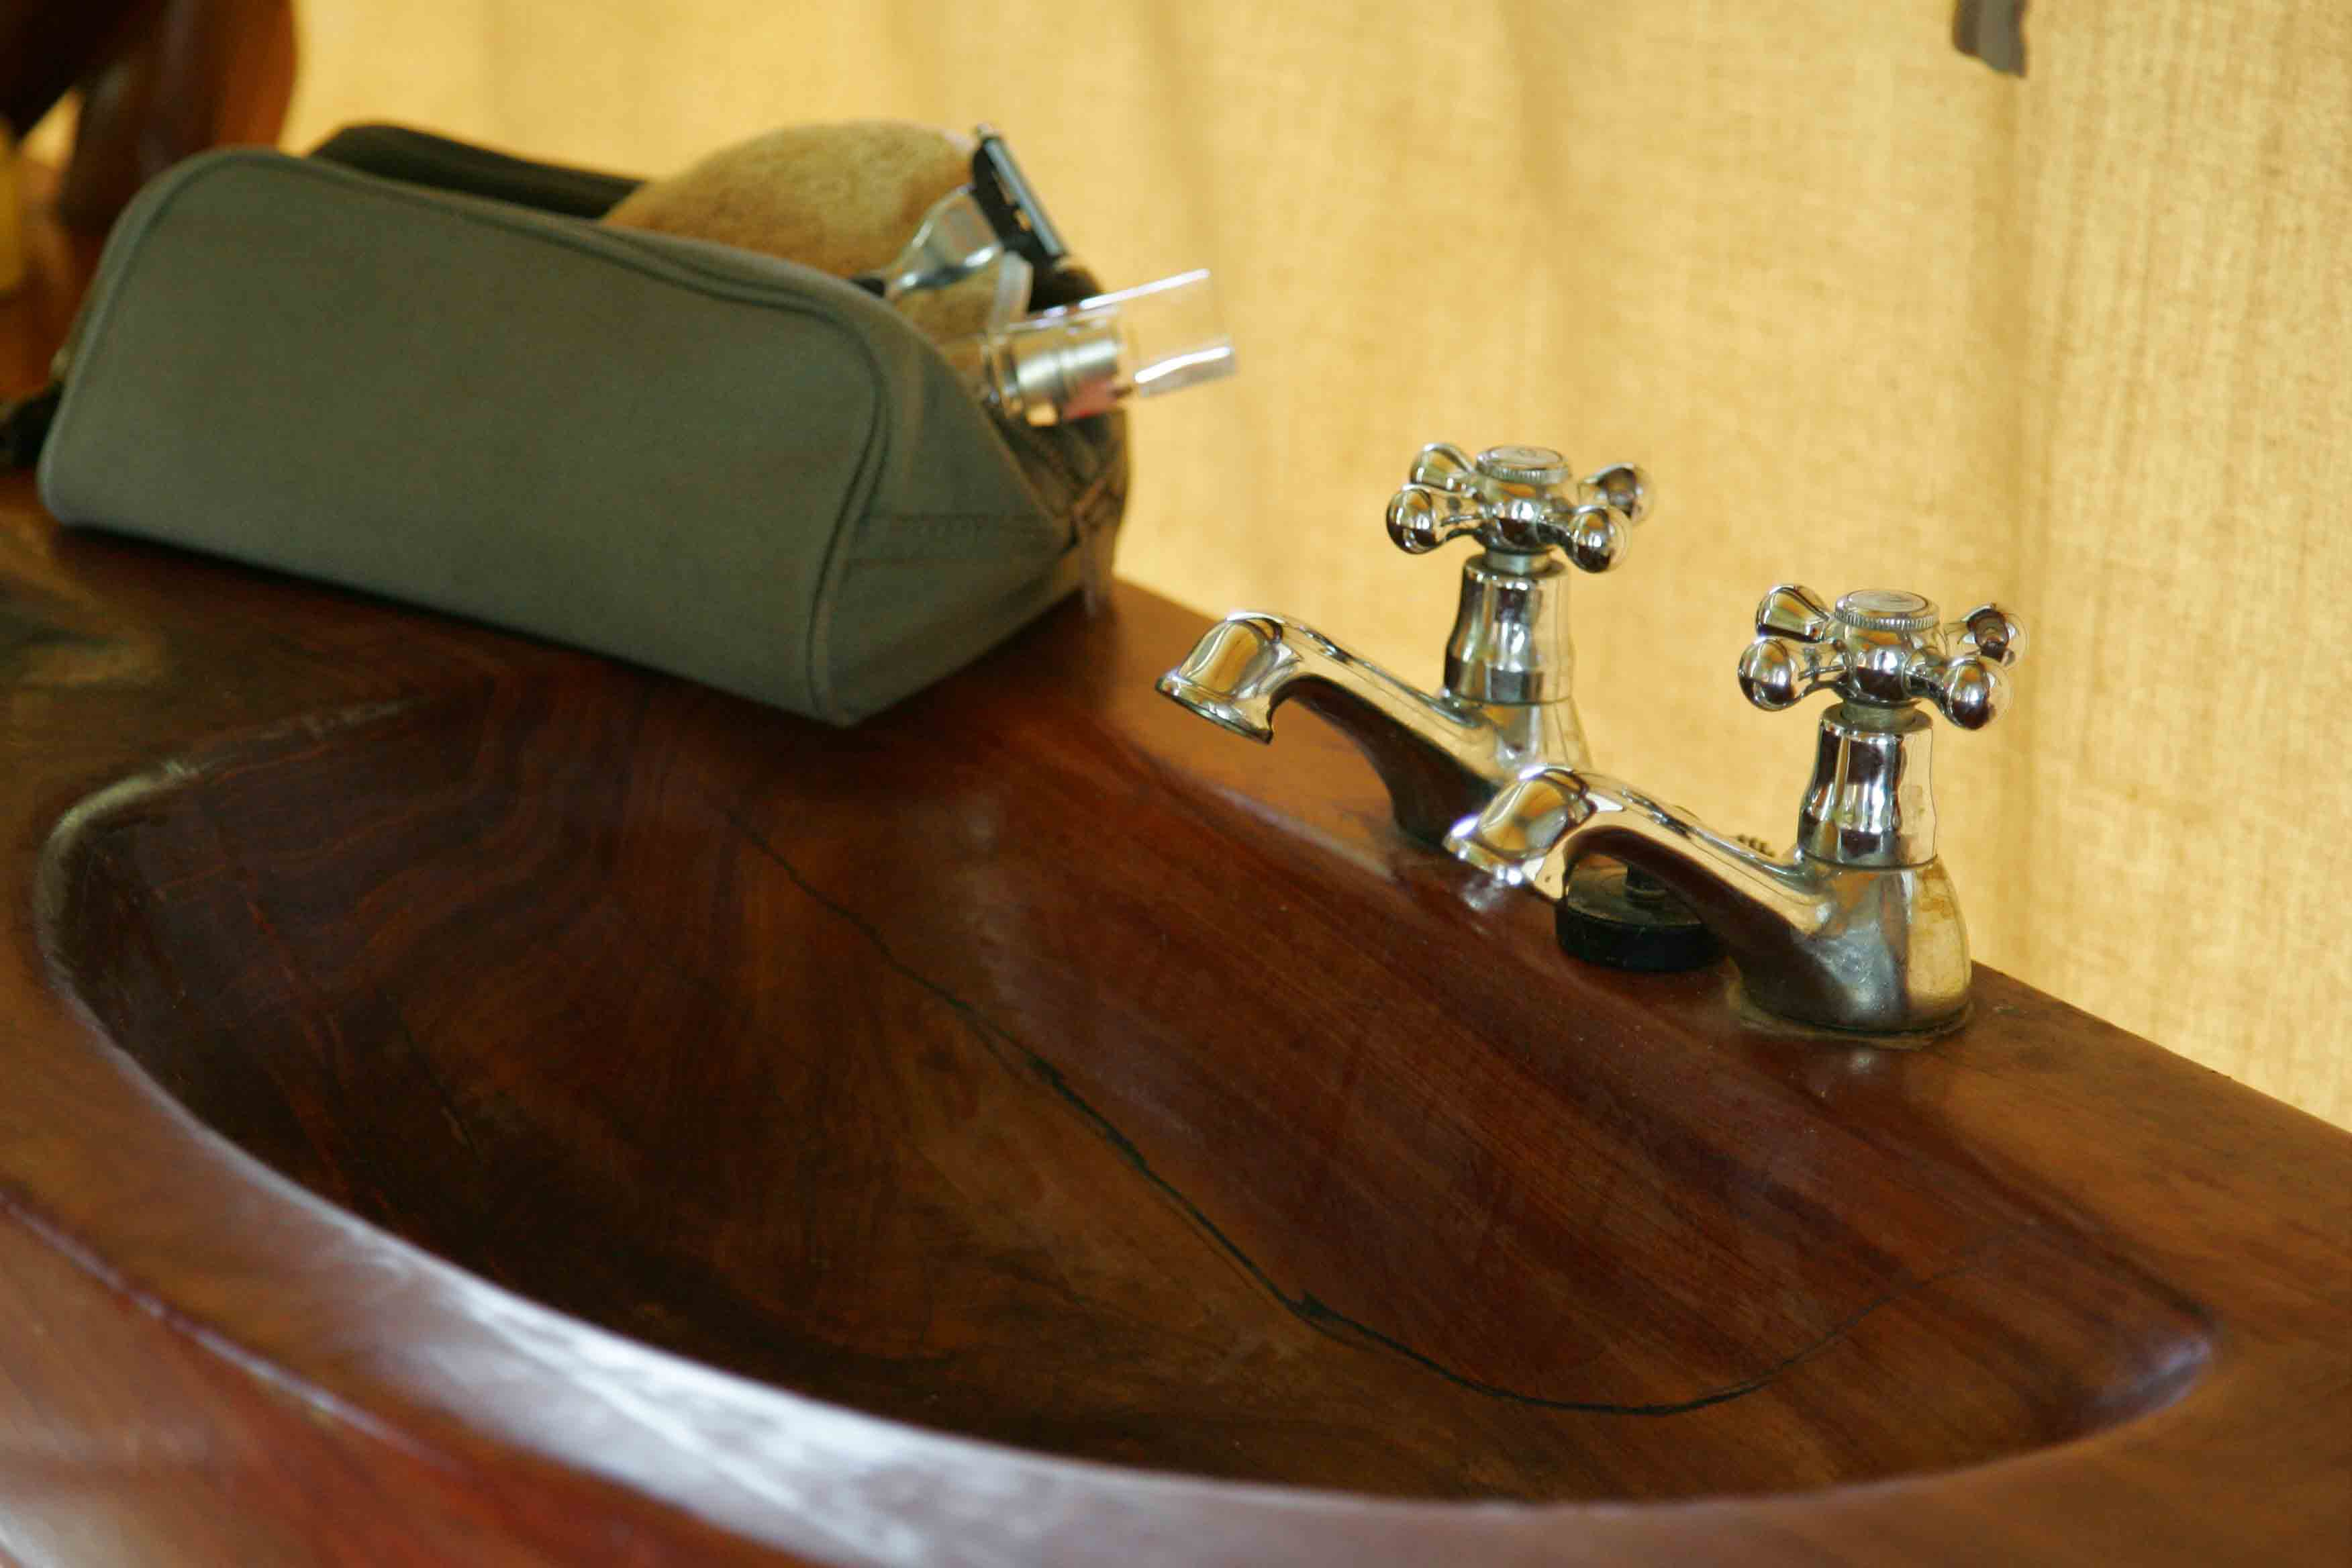 Saruni Wild hand carved rosewood sinks